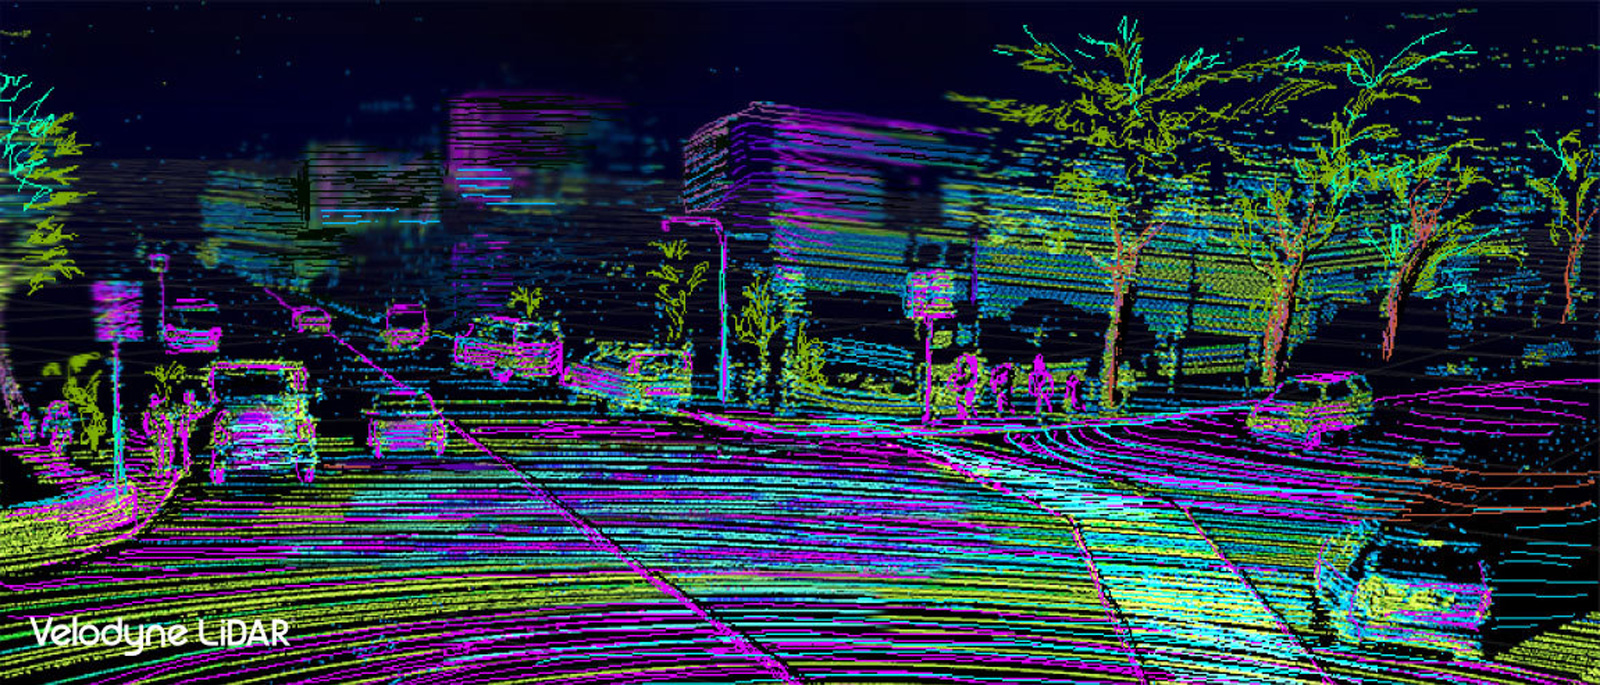 Velodyne LiDAR helps self-driving cars operate at highway speeds